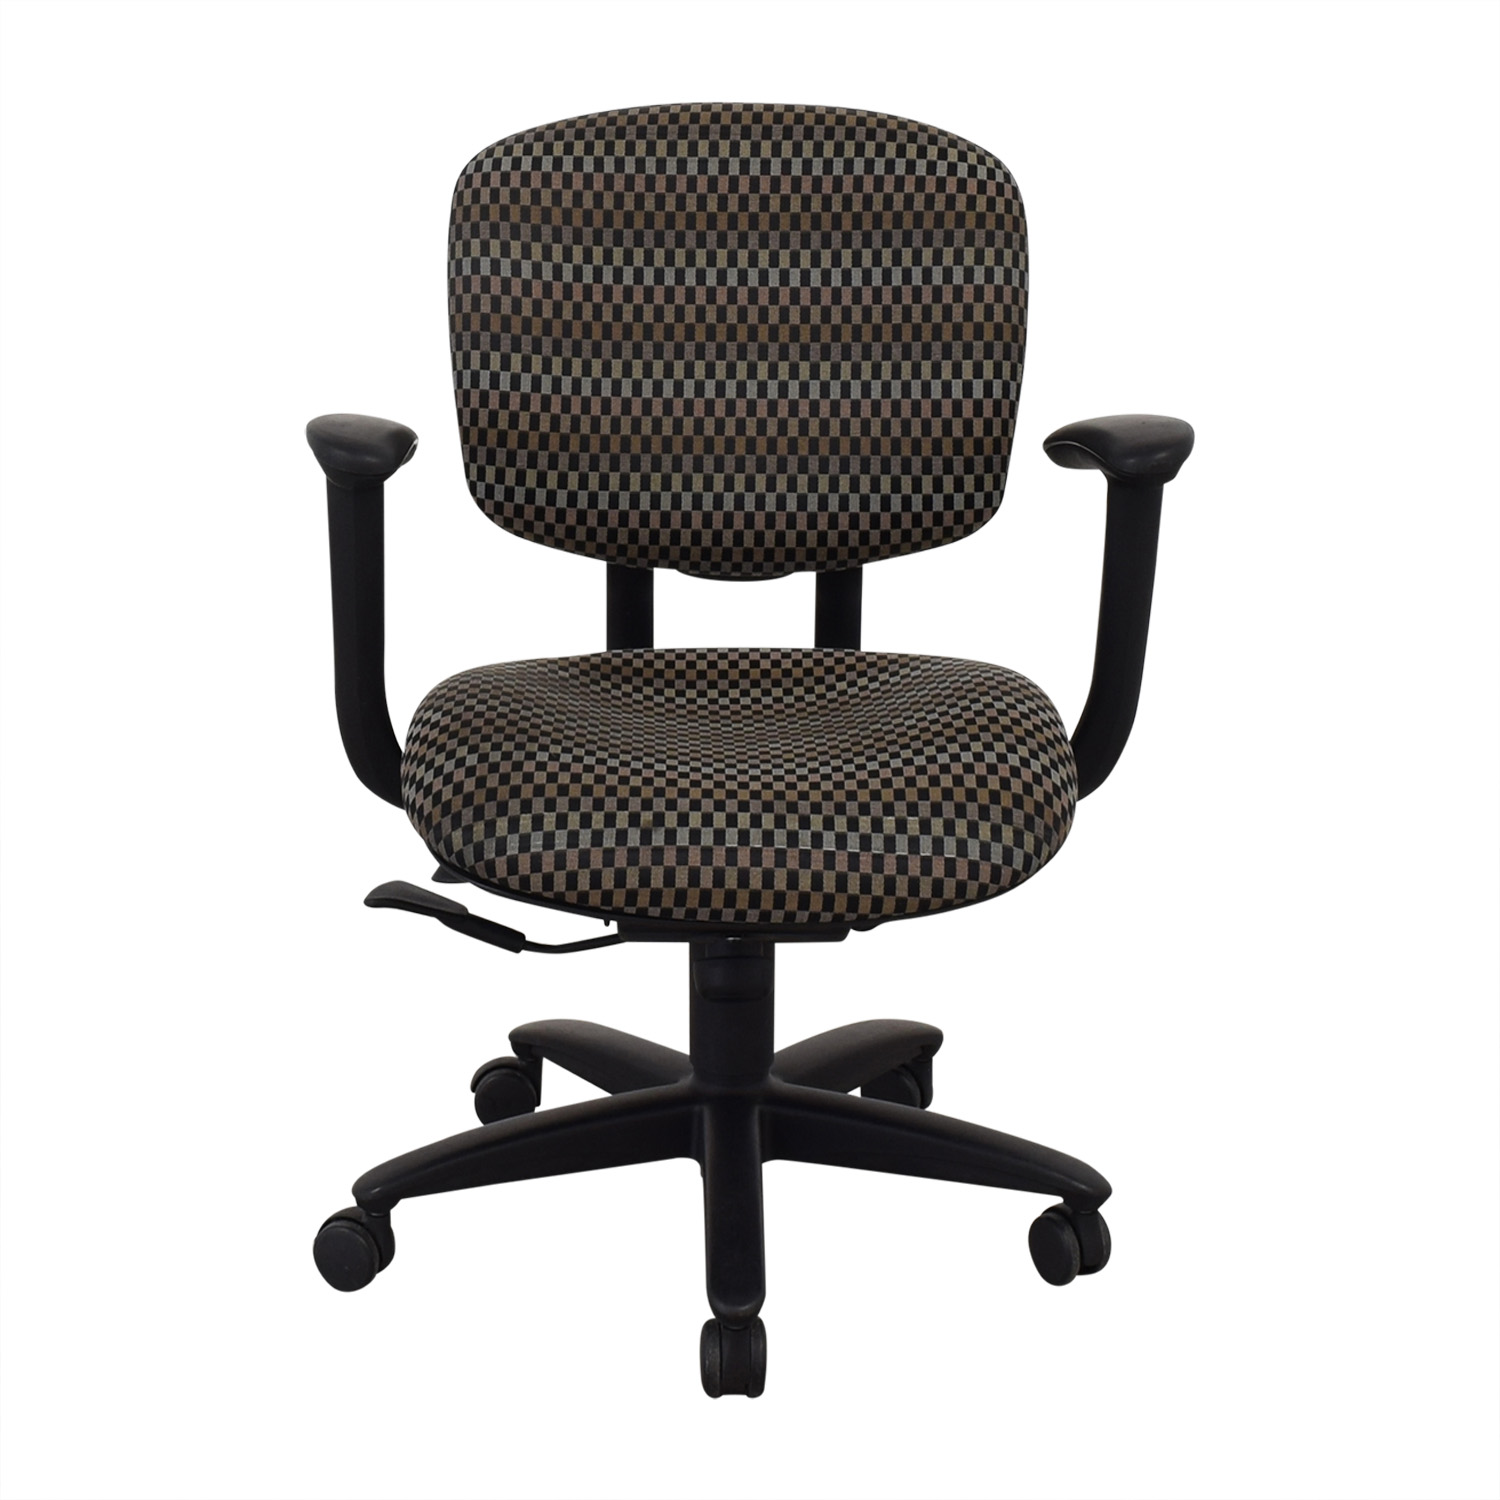 Haworth Haworth Improv Office Desk Chair pa